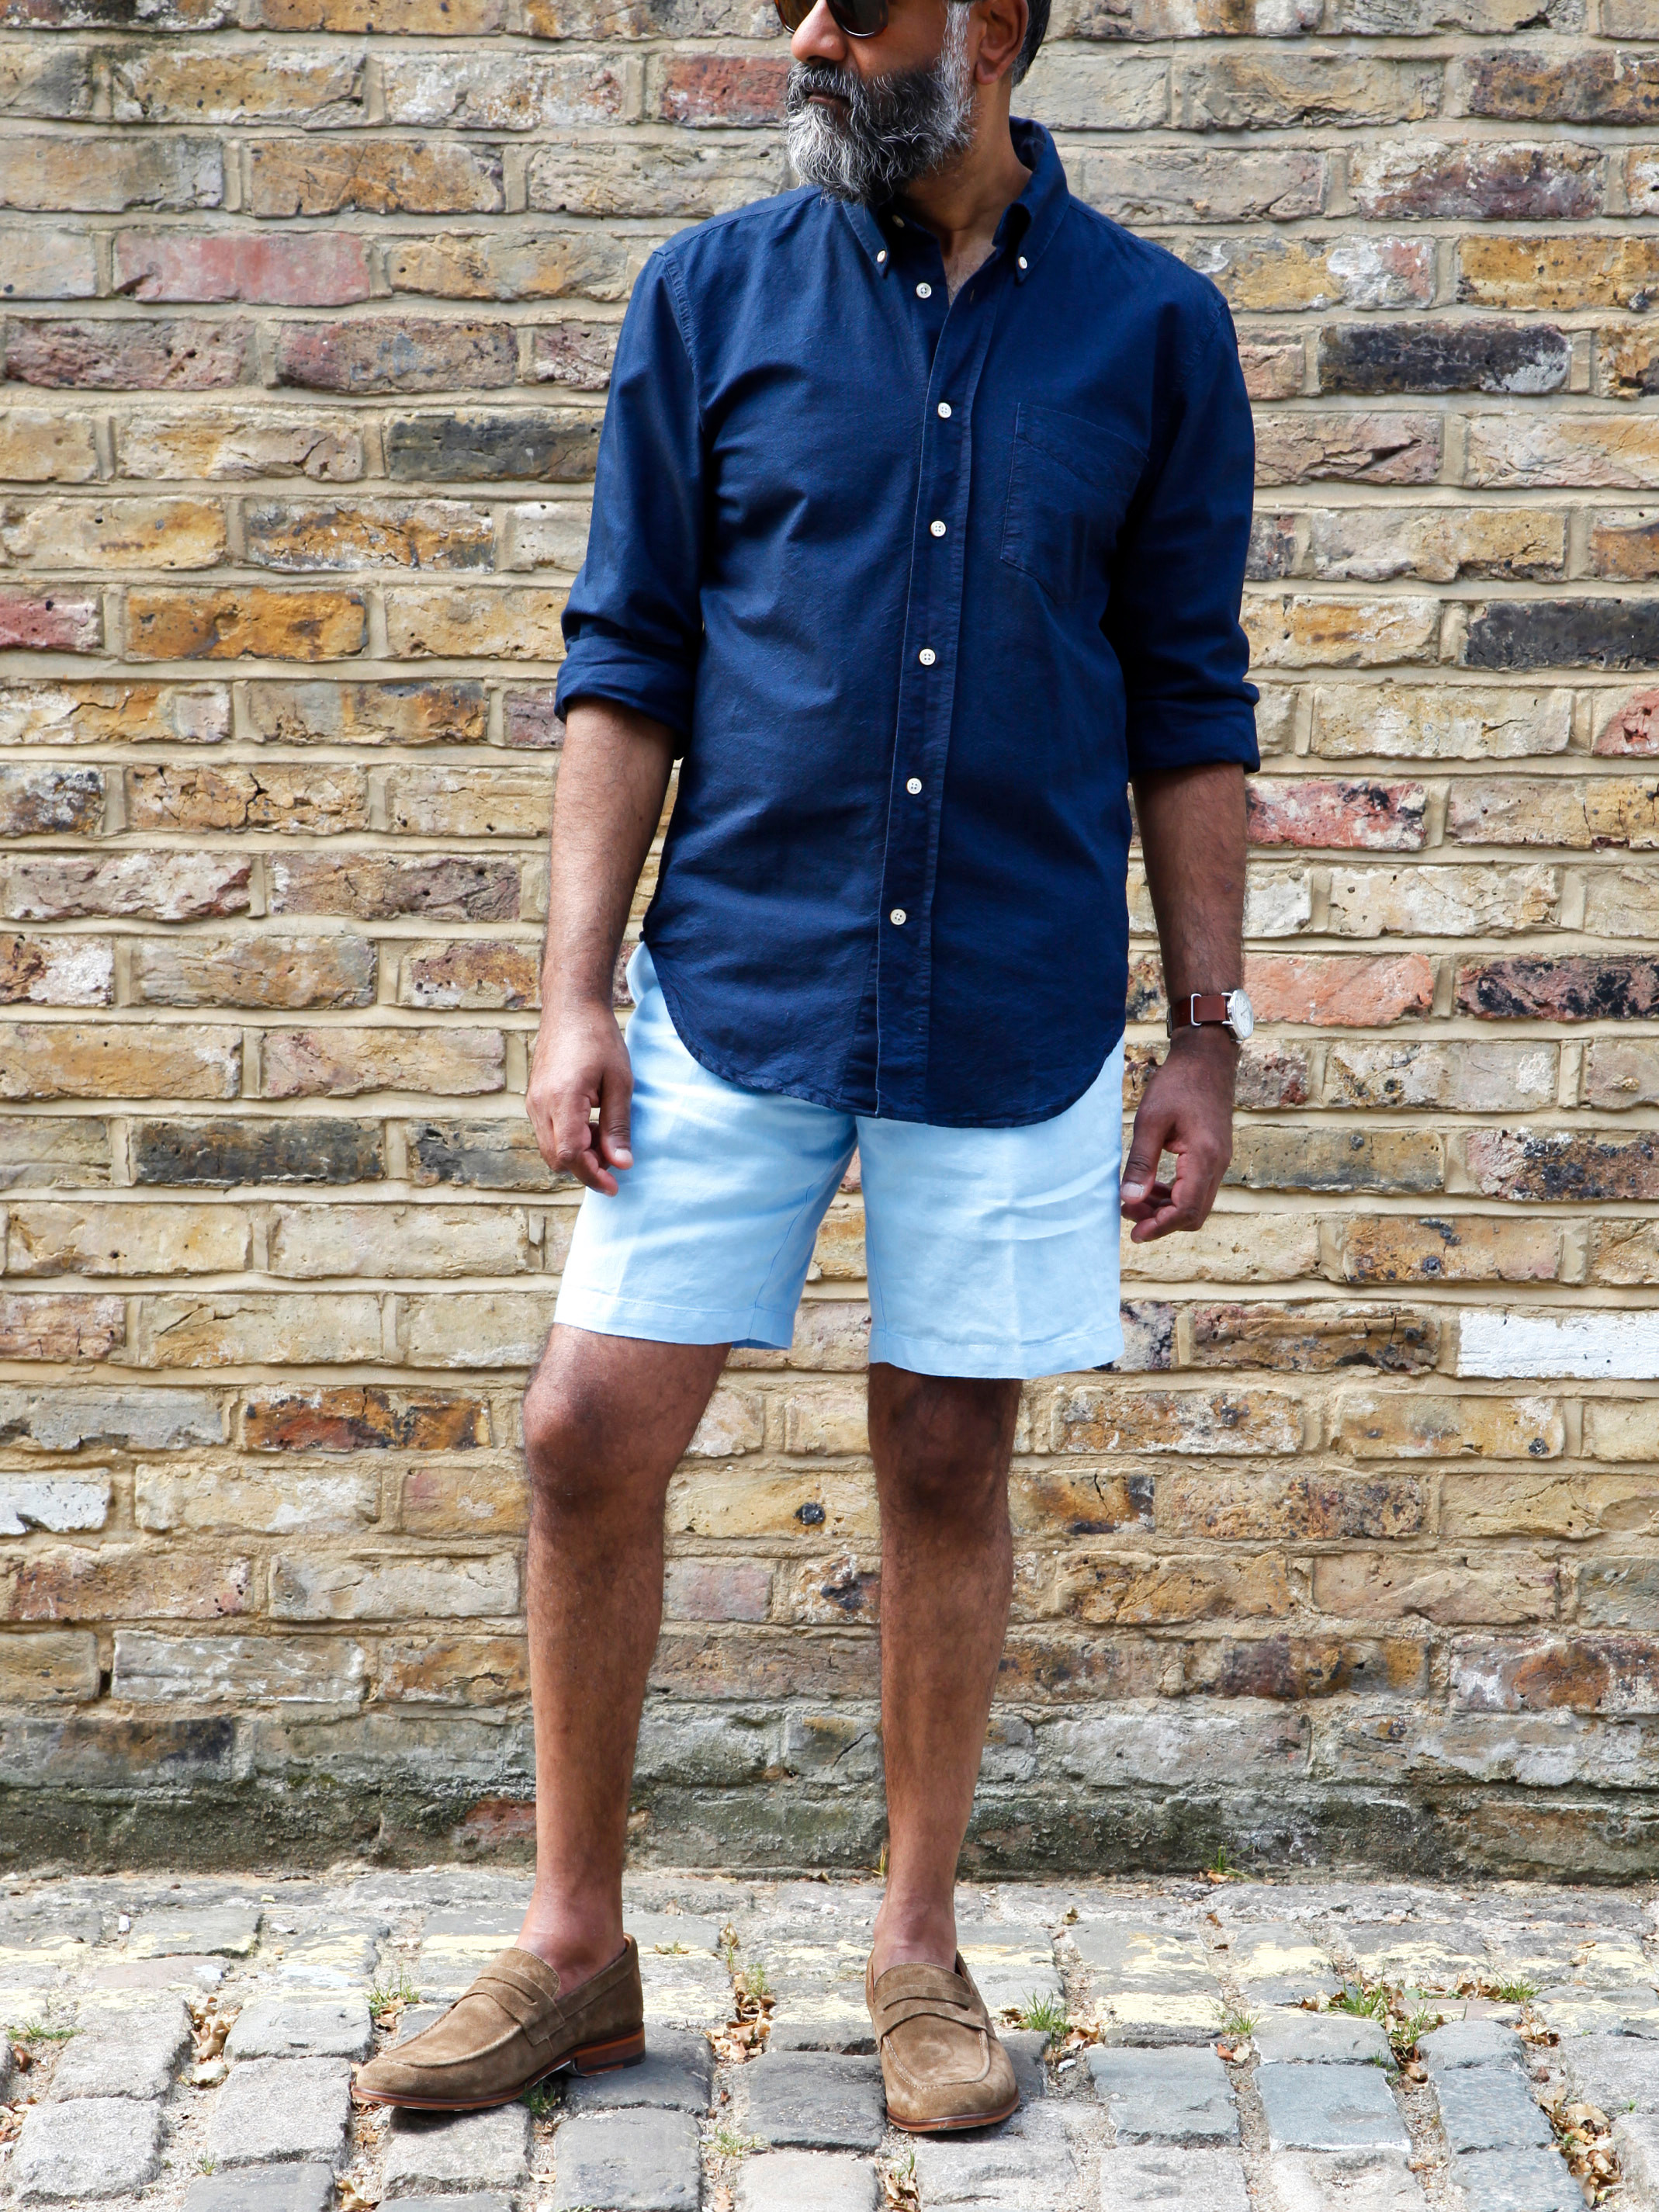 Men's outfit idea for 2021 with navy casual shirt, tailored shorts, tortoiseshell sunglasses, loafers. Suitable for summer.